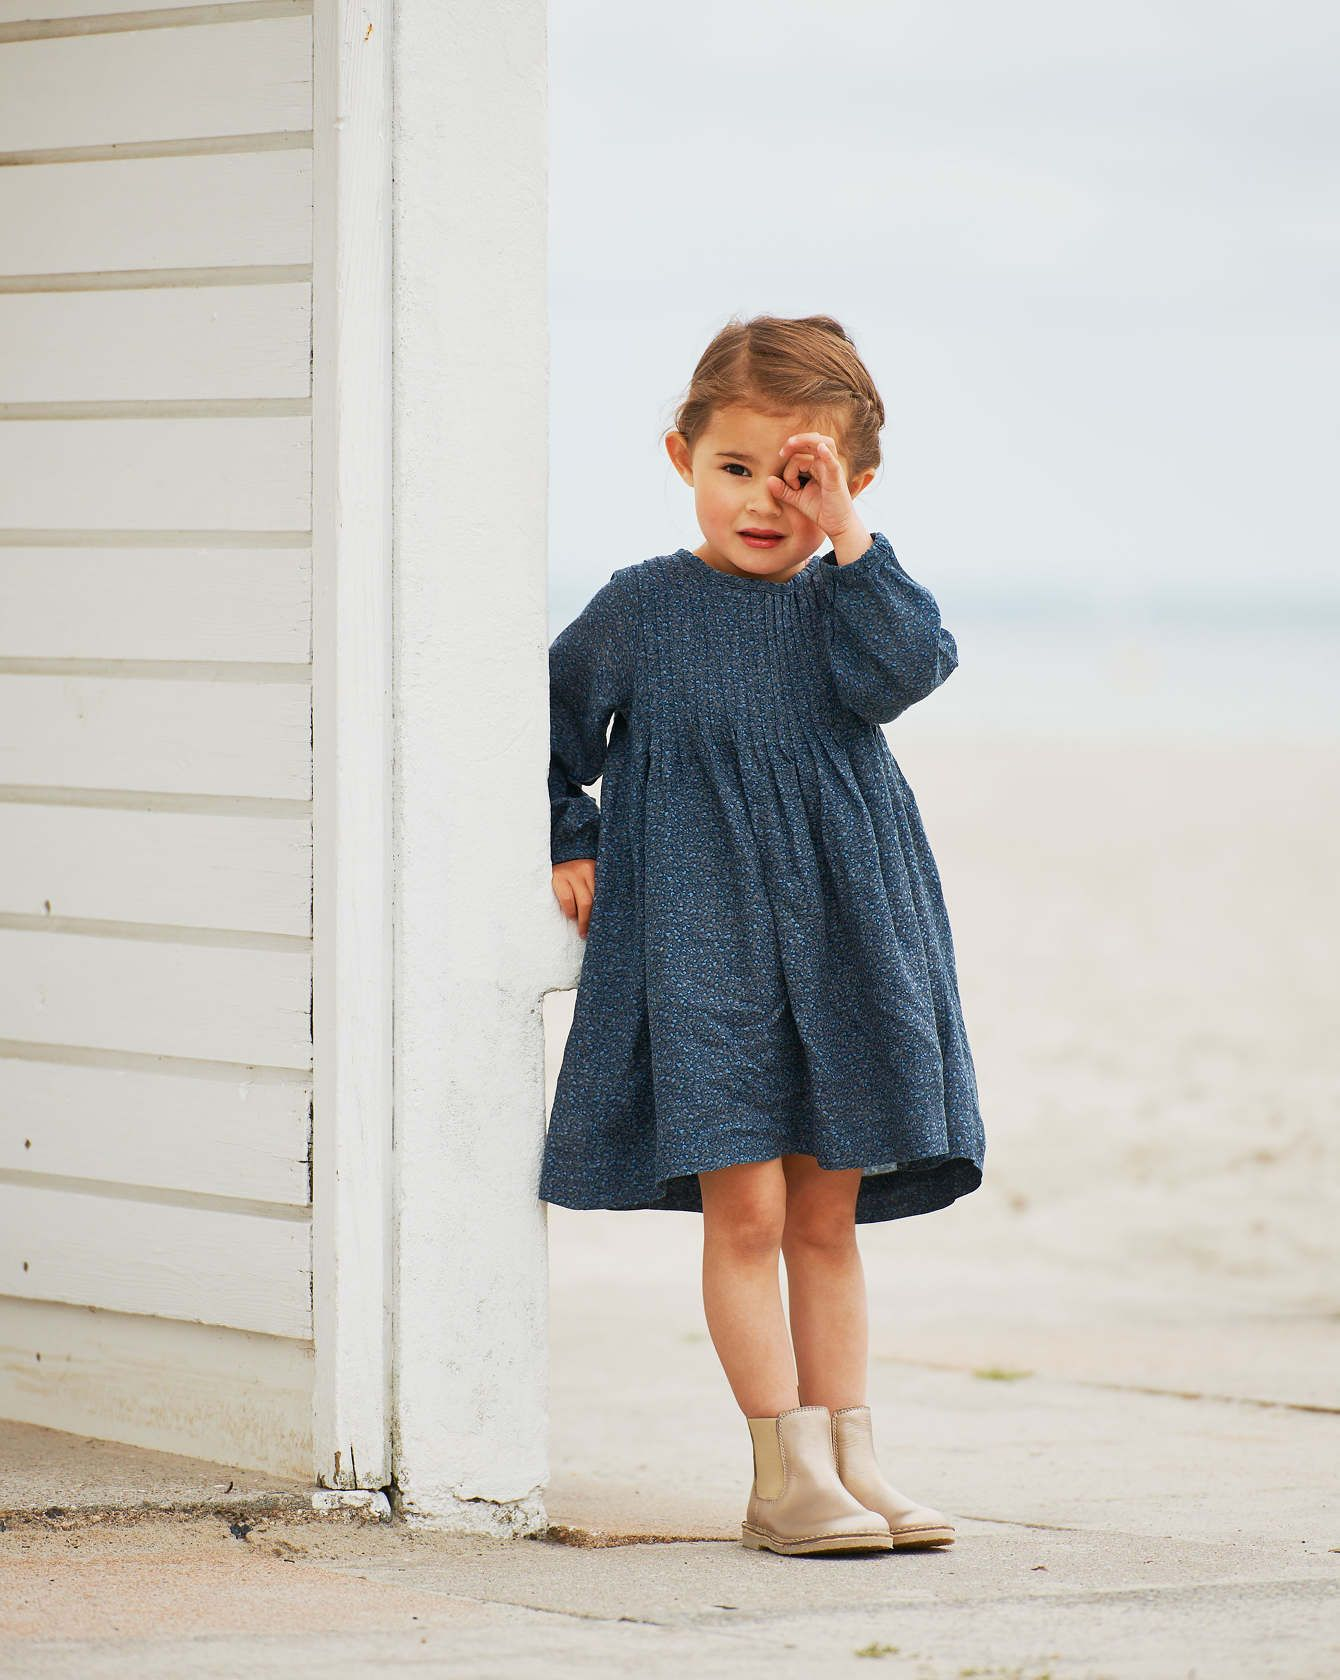 Pale Cloud New Season New Collection And New Website Little Scandinavian Kids Outfits Girl Outfits Little Girl Fashion